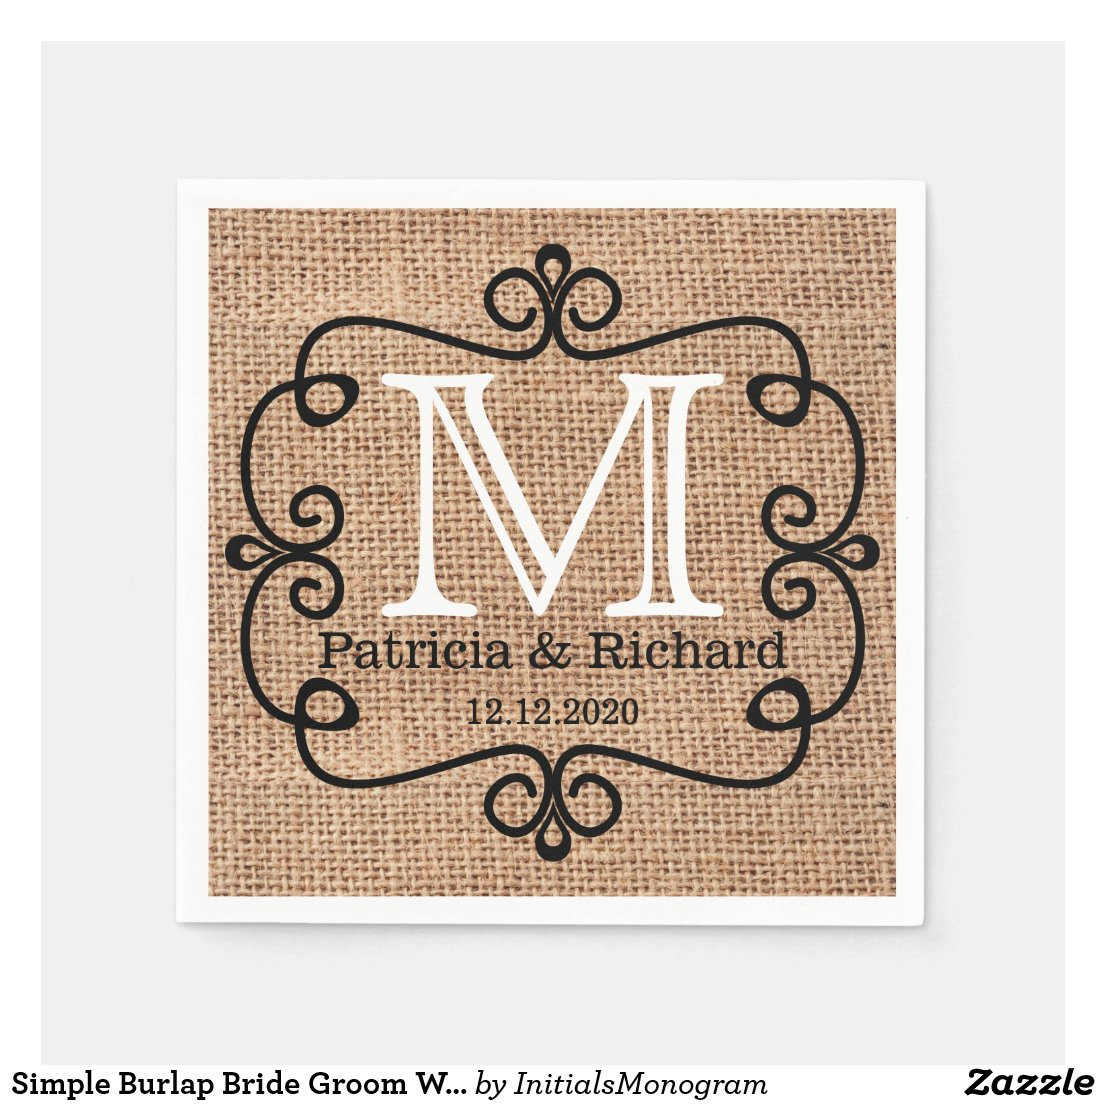 Simple Burlap Bride Groom Wedding Monogram Napkin